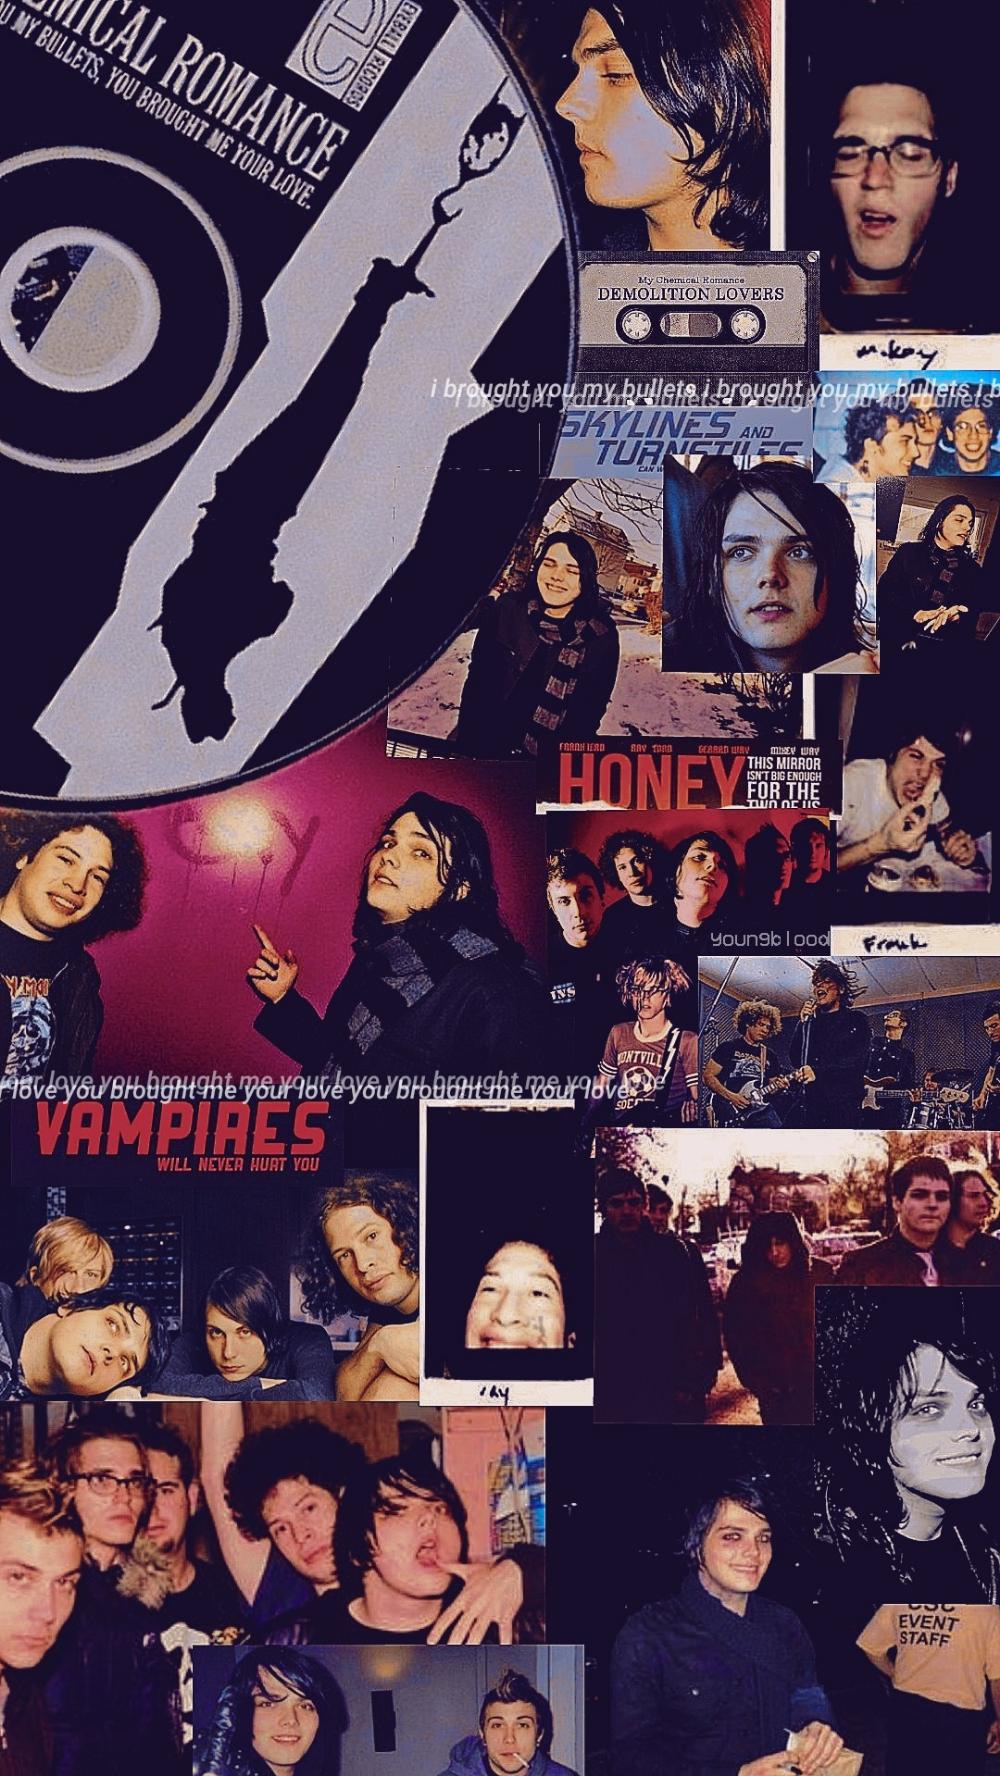 Danger Days Tumblr Emo Wallpaper My Chemical Romance Wallpaper Band Wallpapers